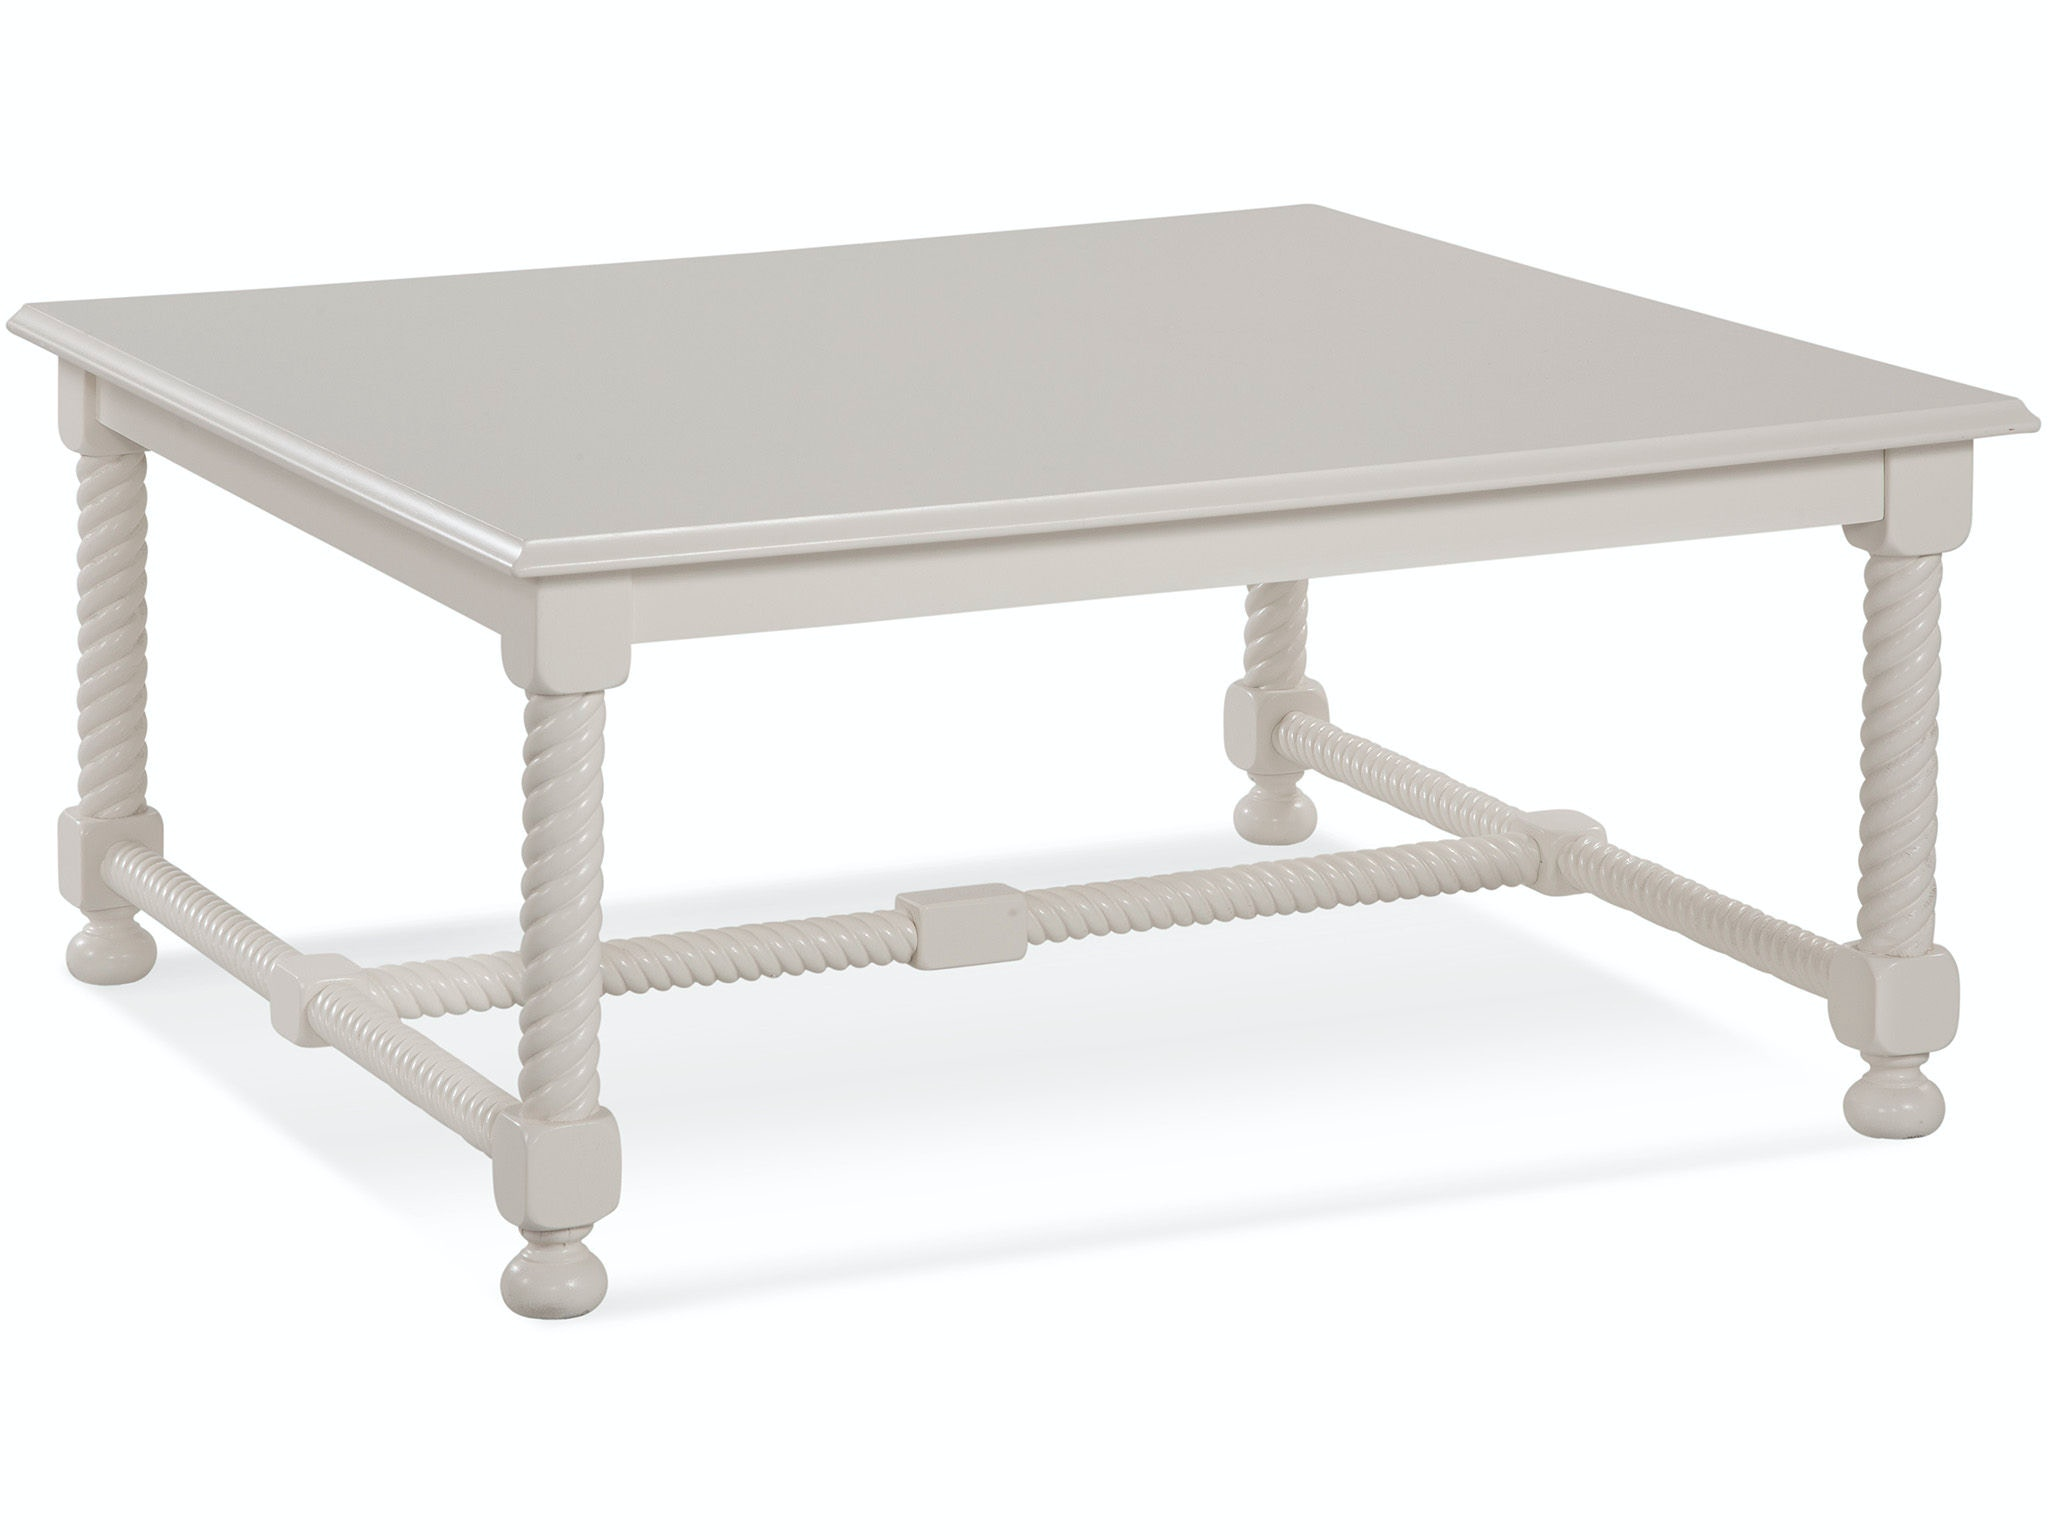 Cocktail Table 1052-077